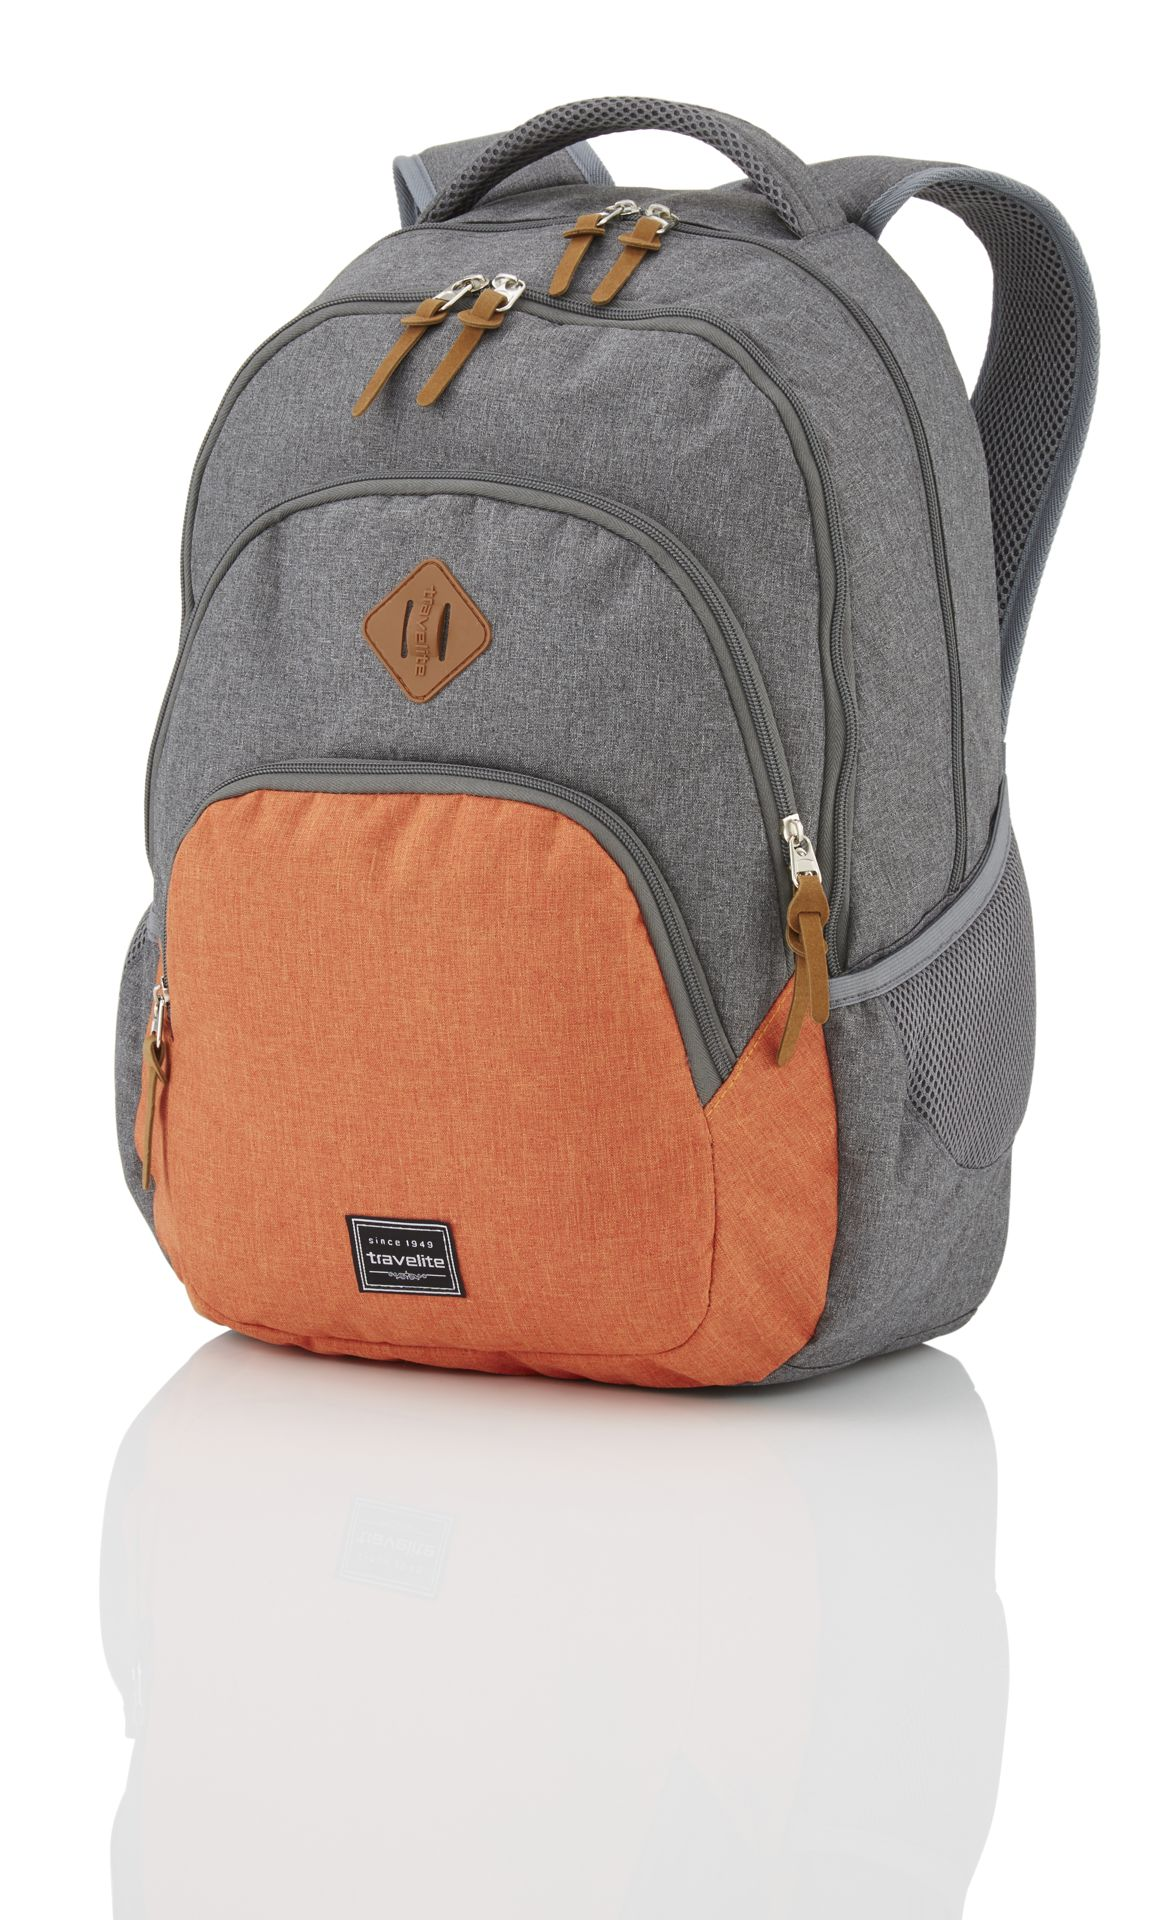 Travelite Basics Backpack Melange Grey/orange